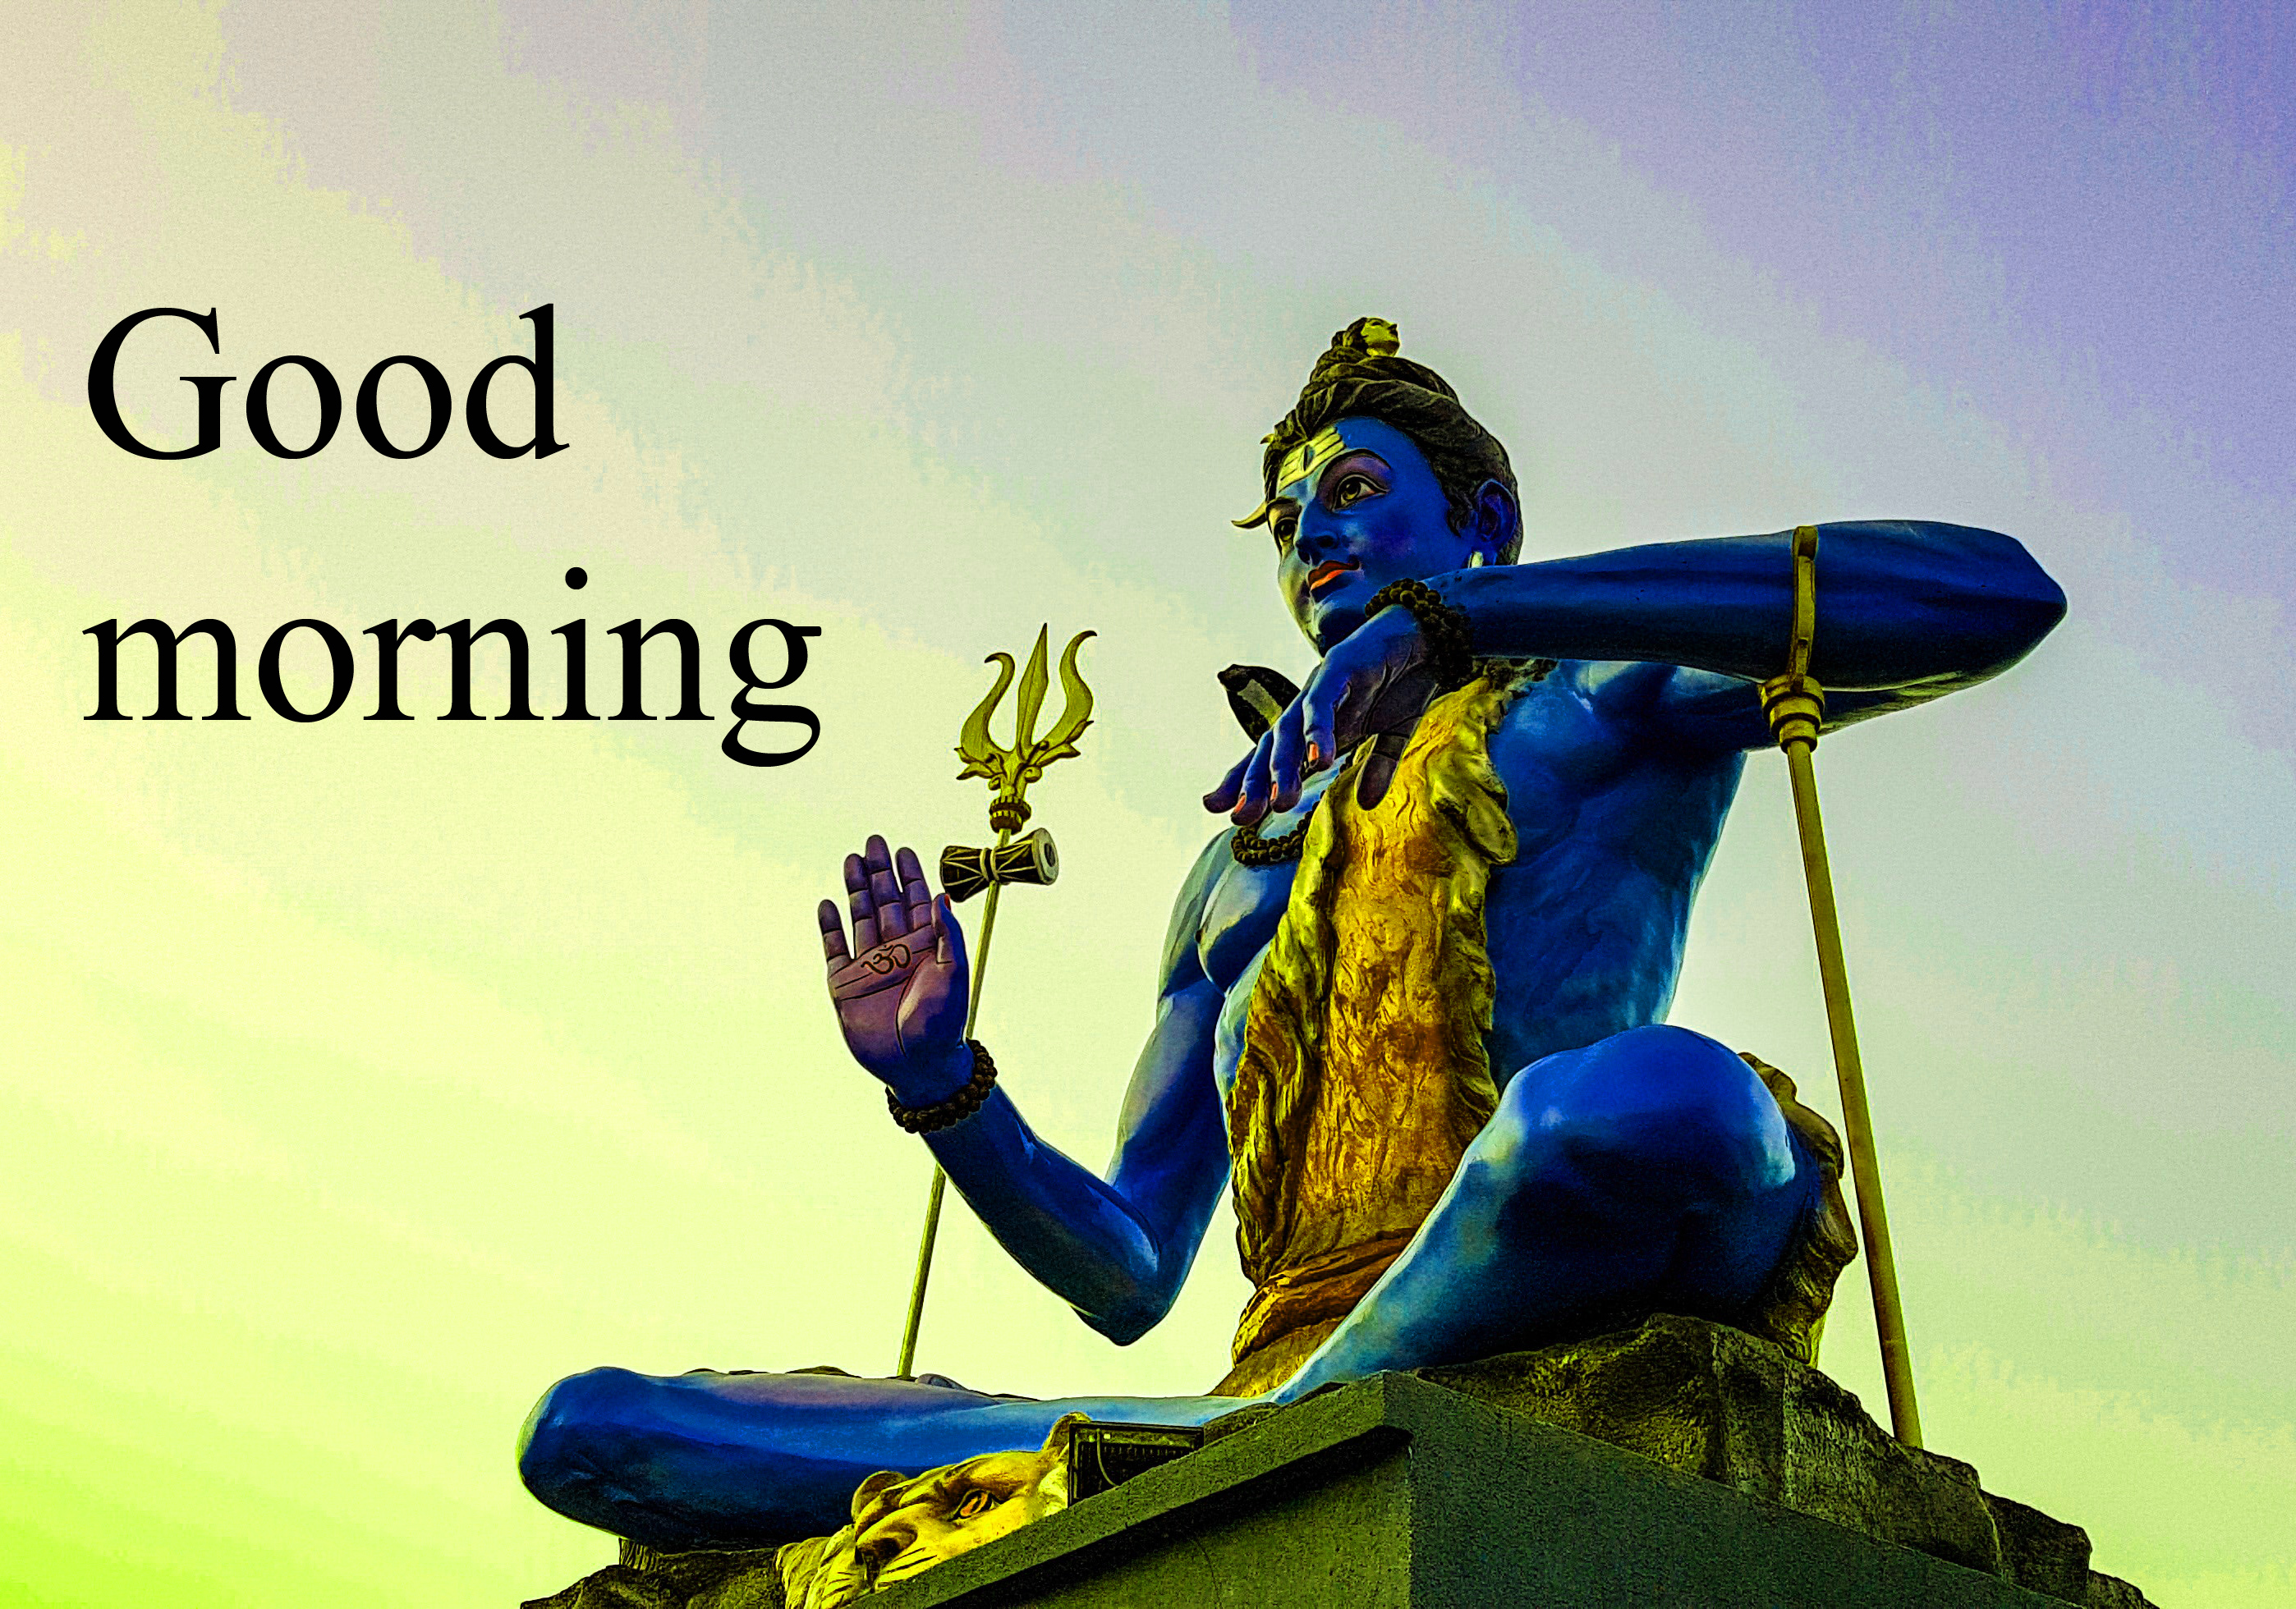 LORD SHIVA GOOD MORNING WISHES IMAGES PICS FREE HD DOWNLOAD